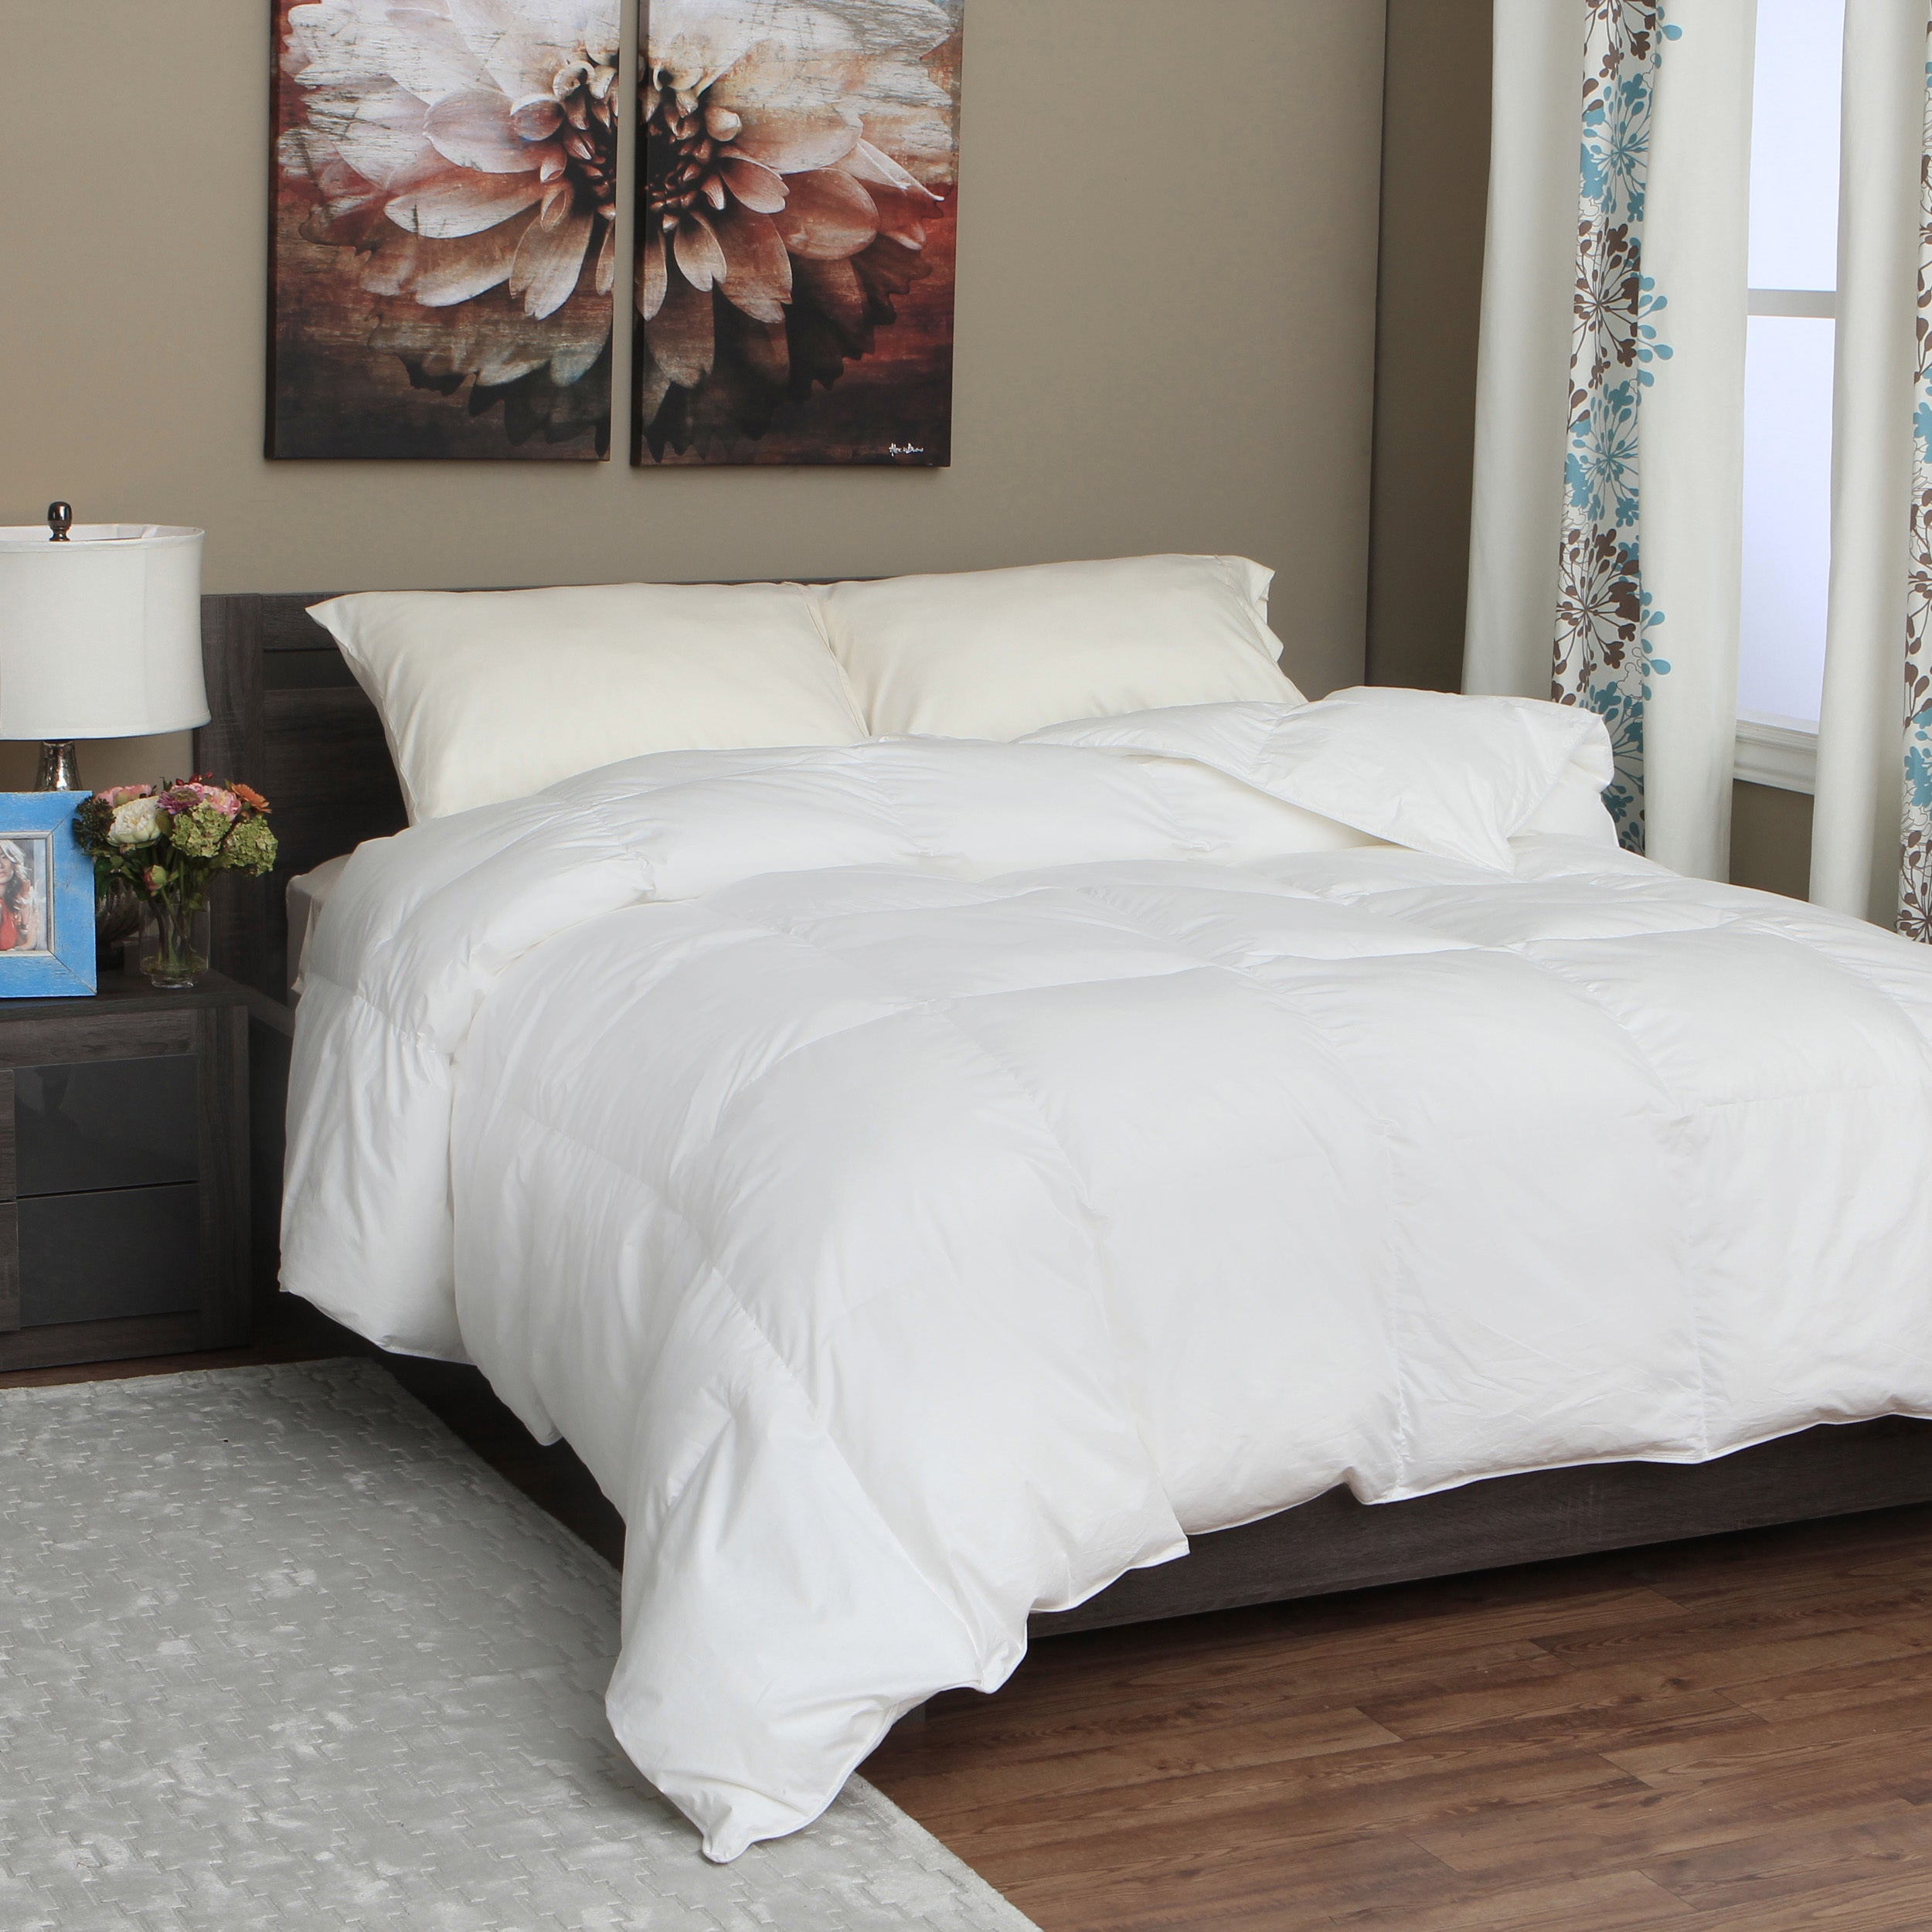 overstock set home shipping queen vcny bath comforter bedding nina embossed today down alternative product free